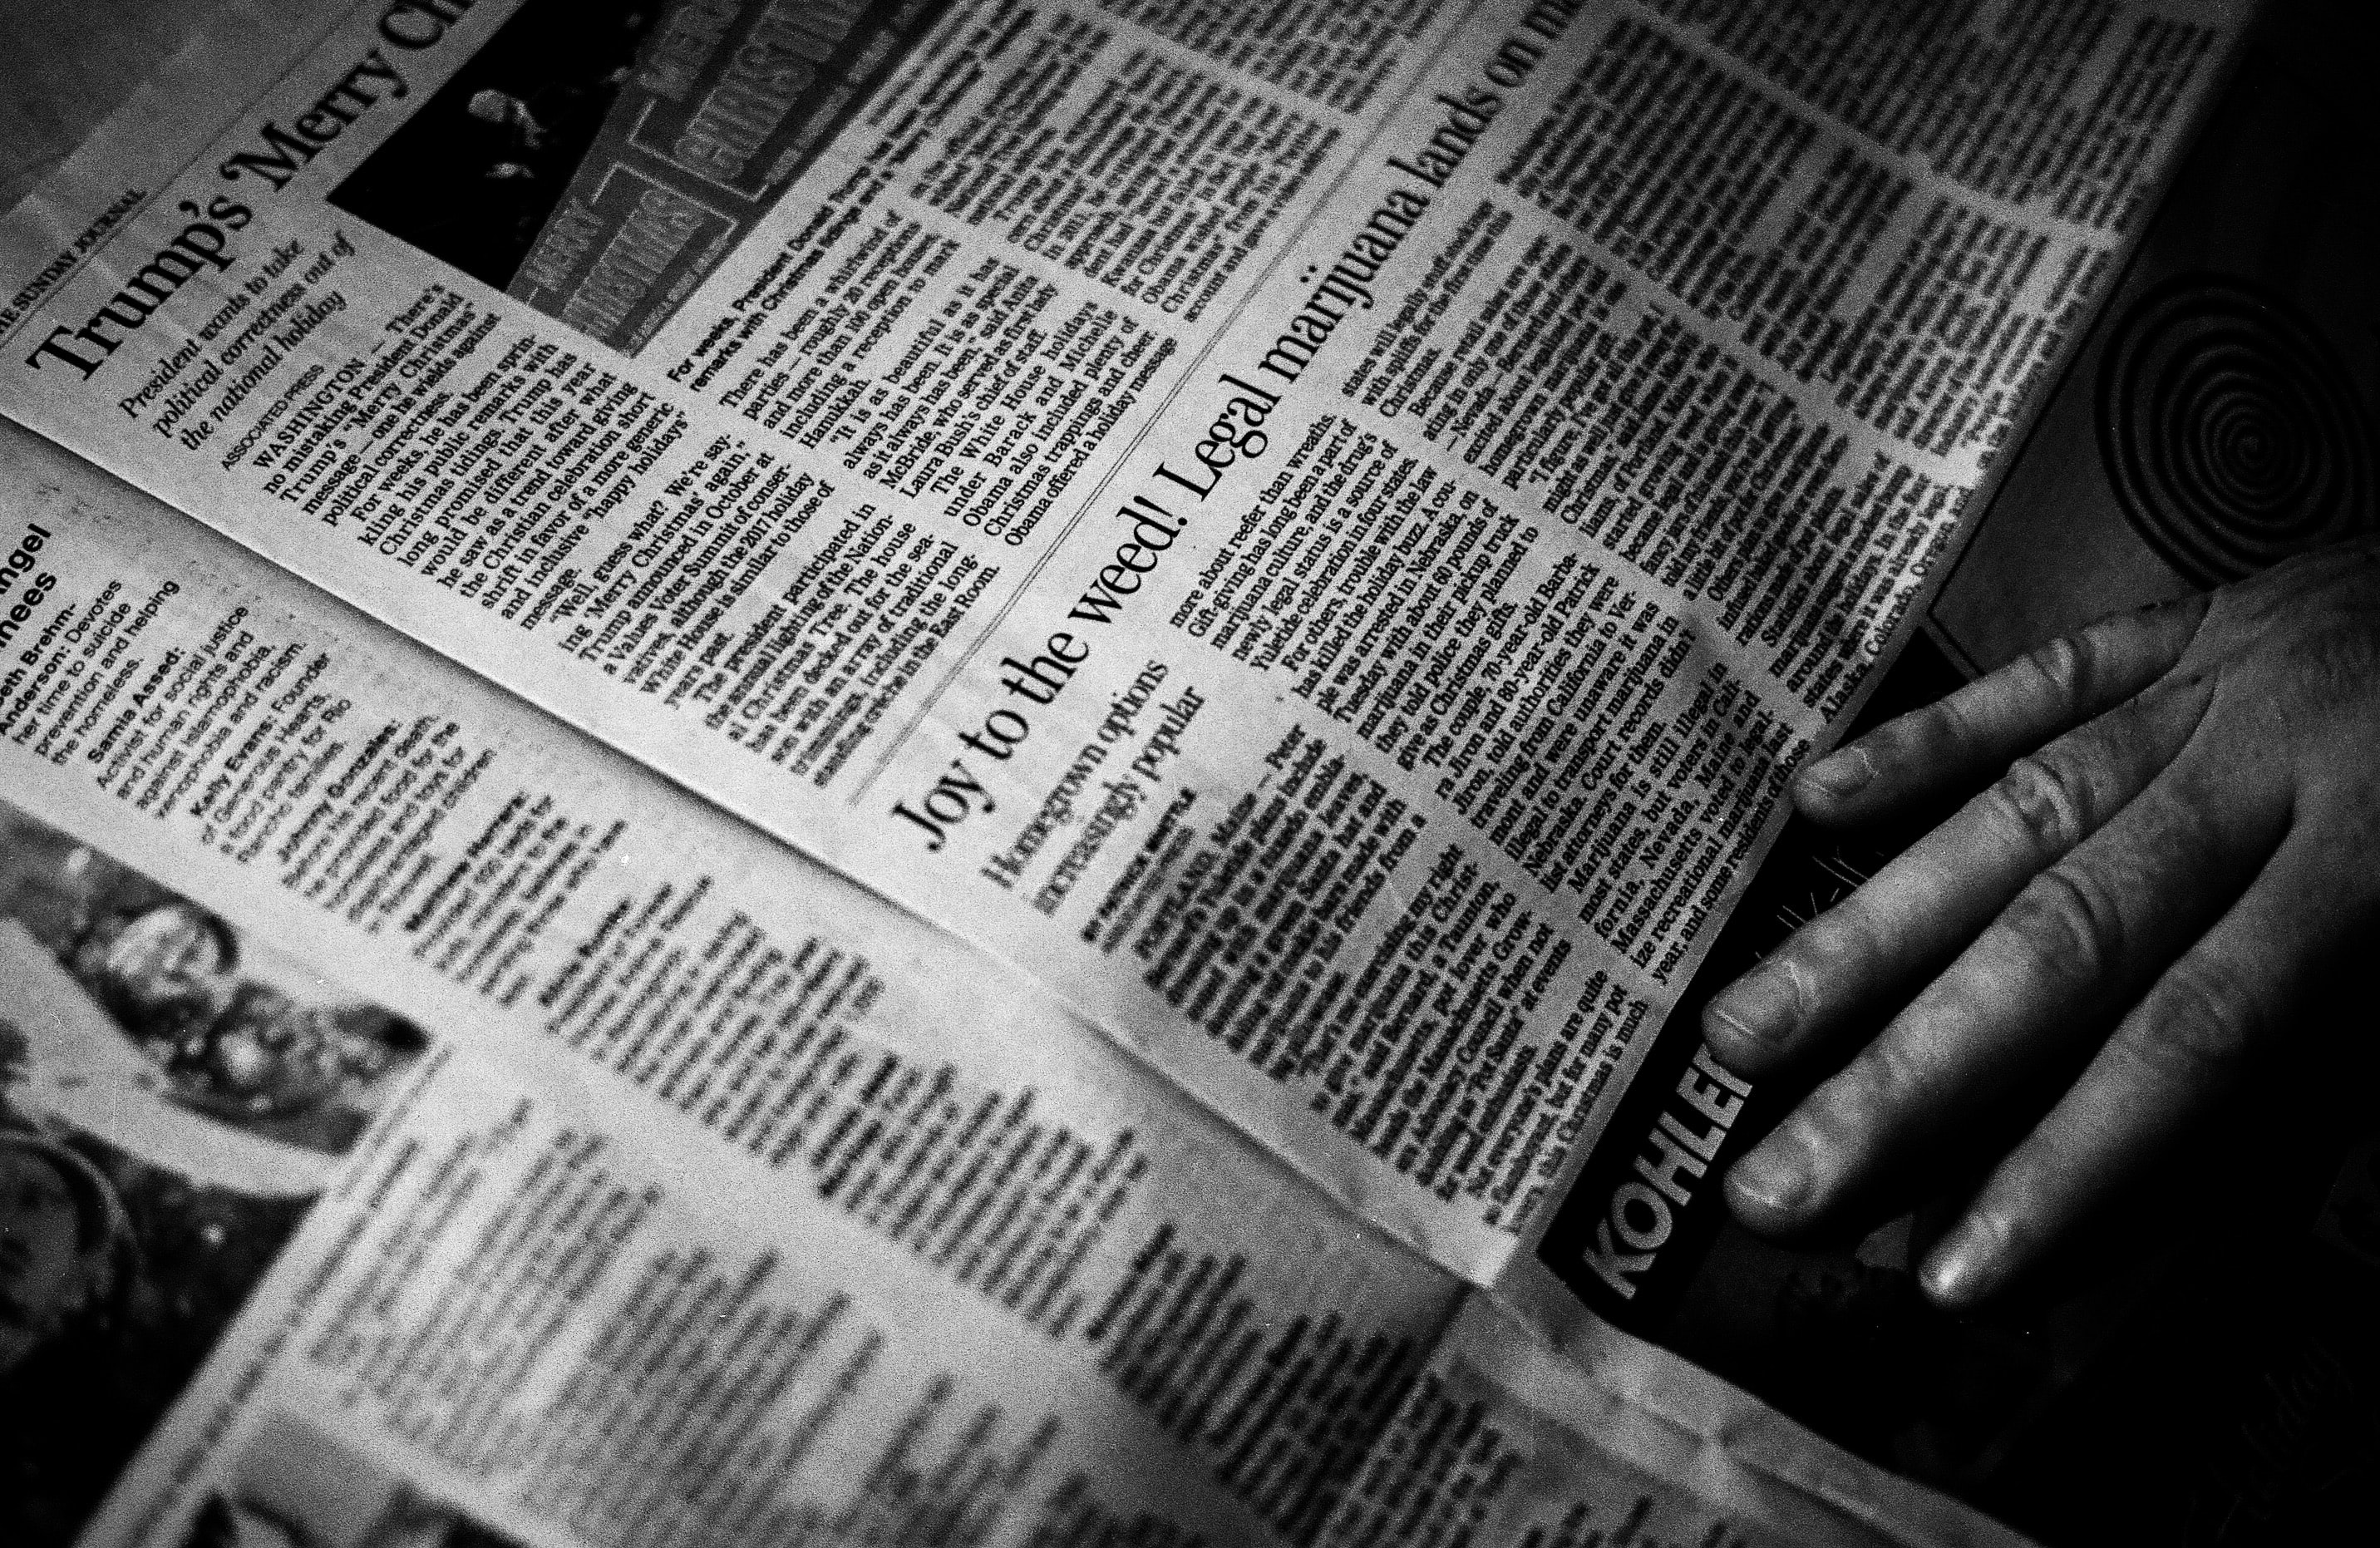 person's right hand near newspaper